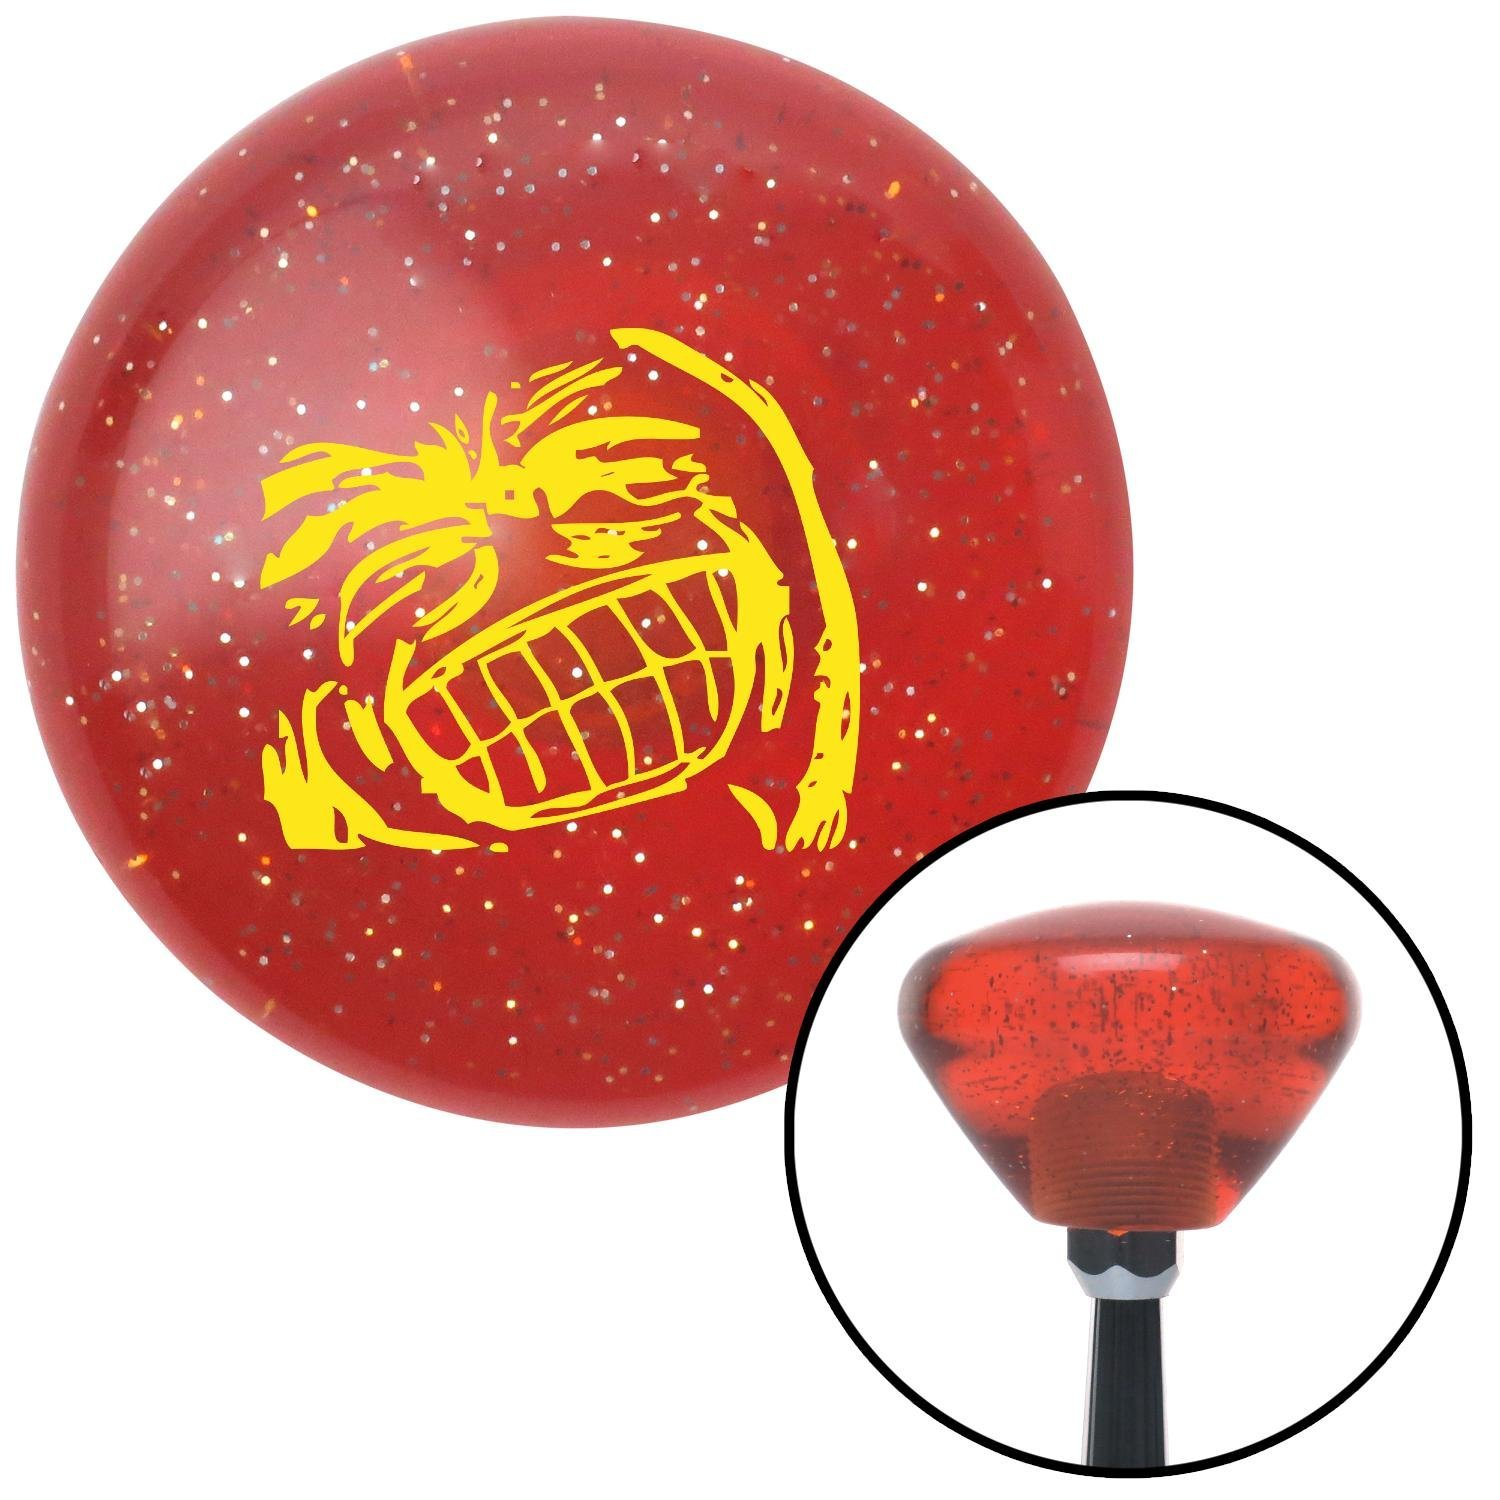 American Shifter 178037 Orange Retro Metal Flake Shift Knob with M16 x 1.5 Insert Yellow Big Grin Meme